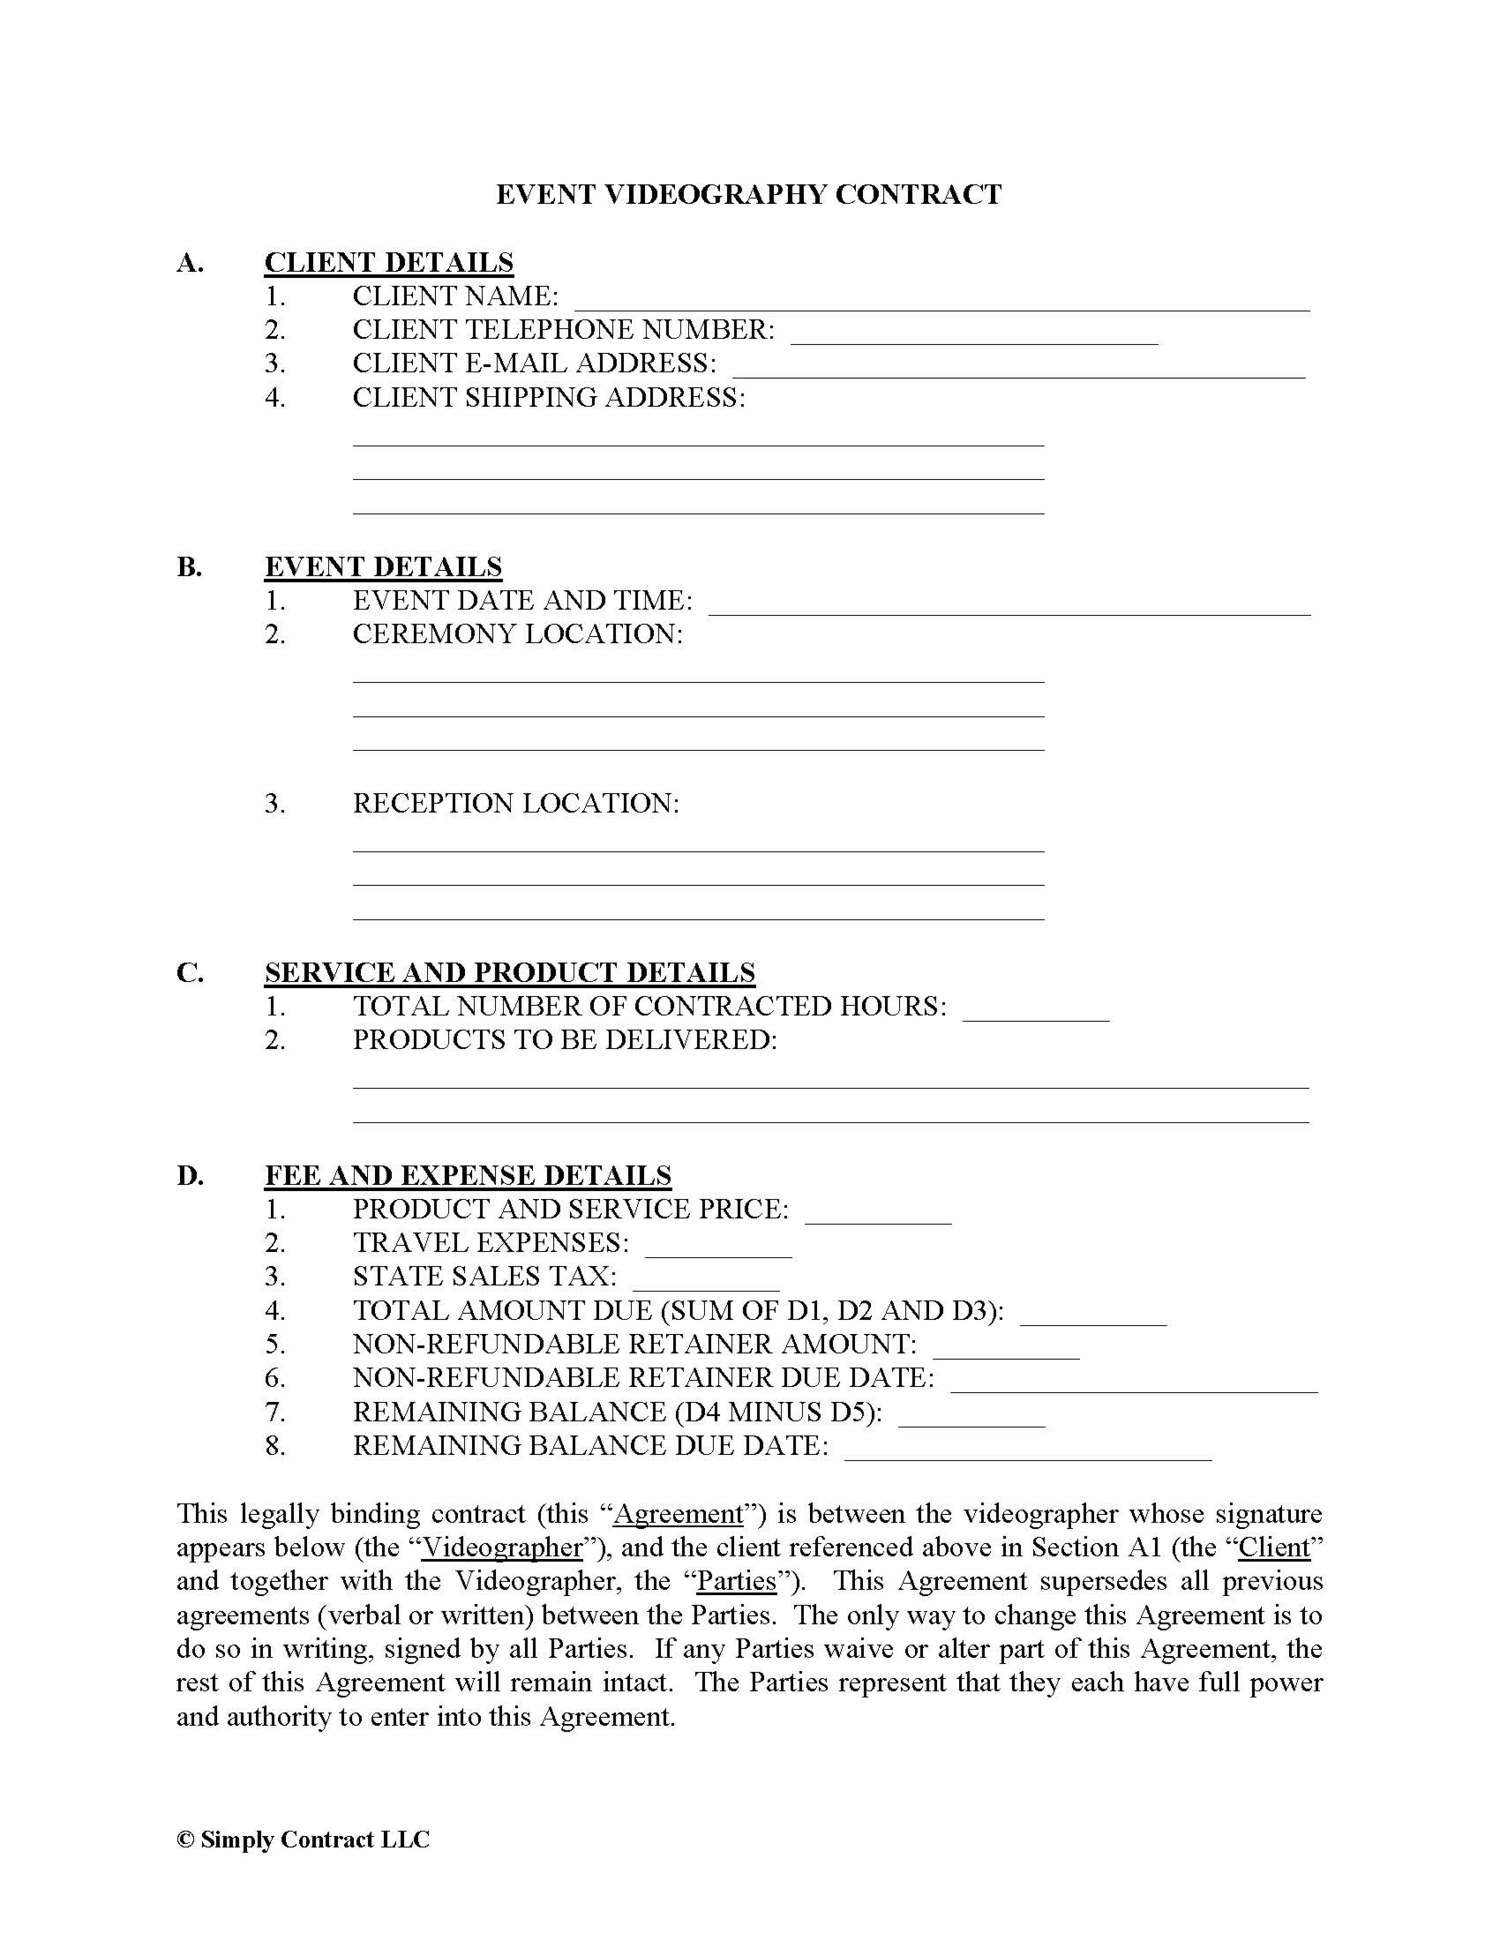 Videography Contract Examples in PDF